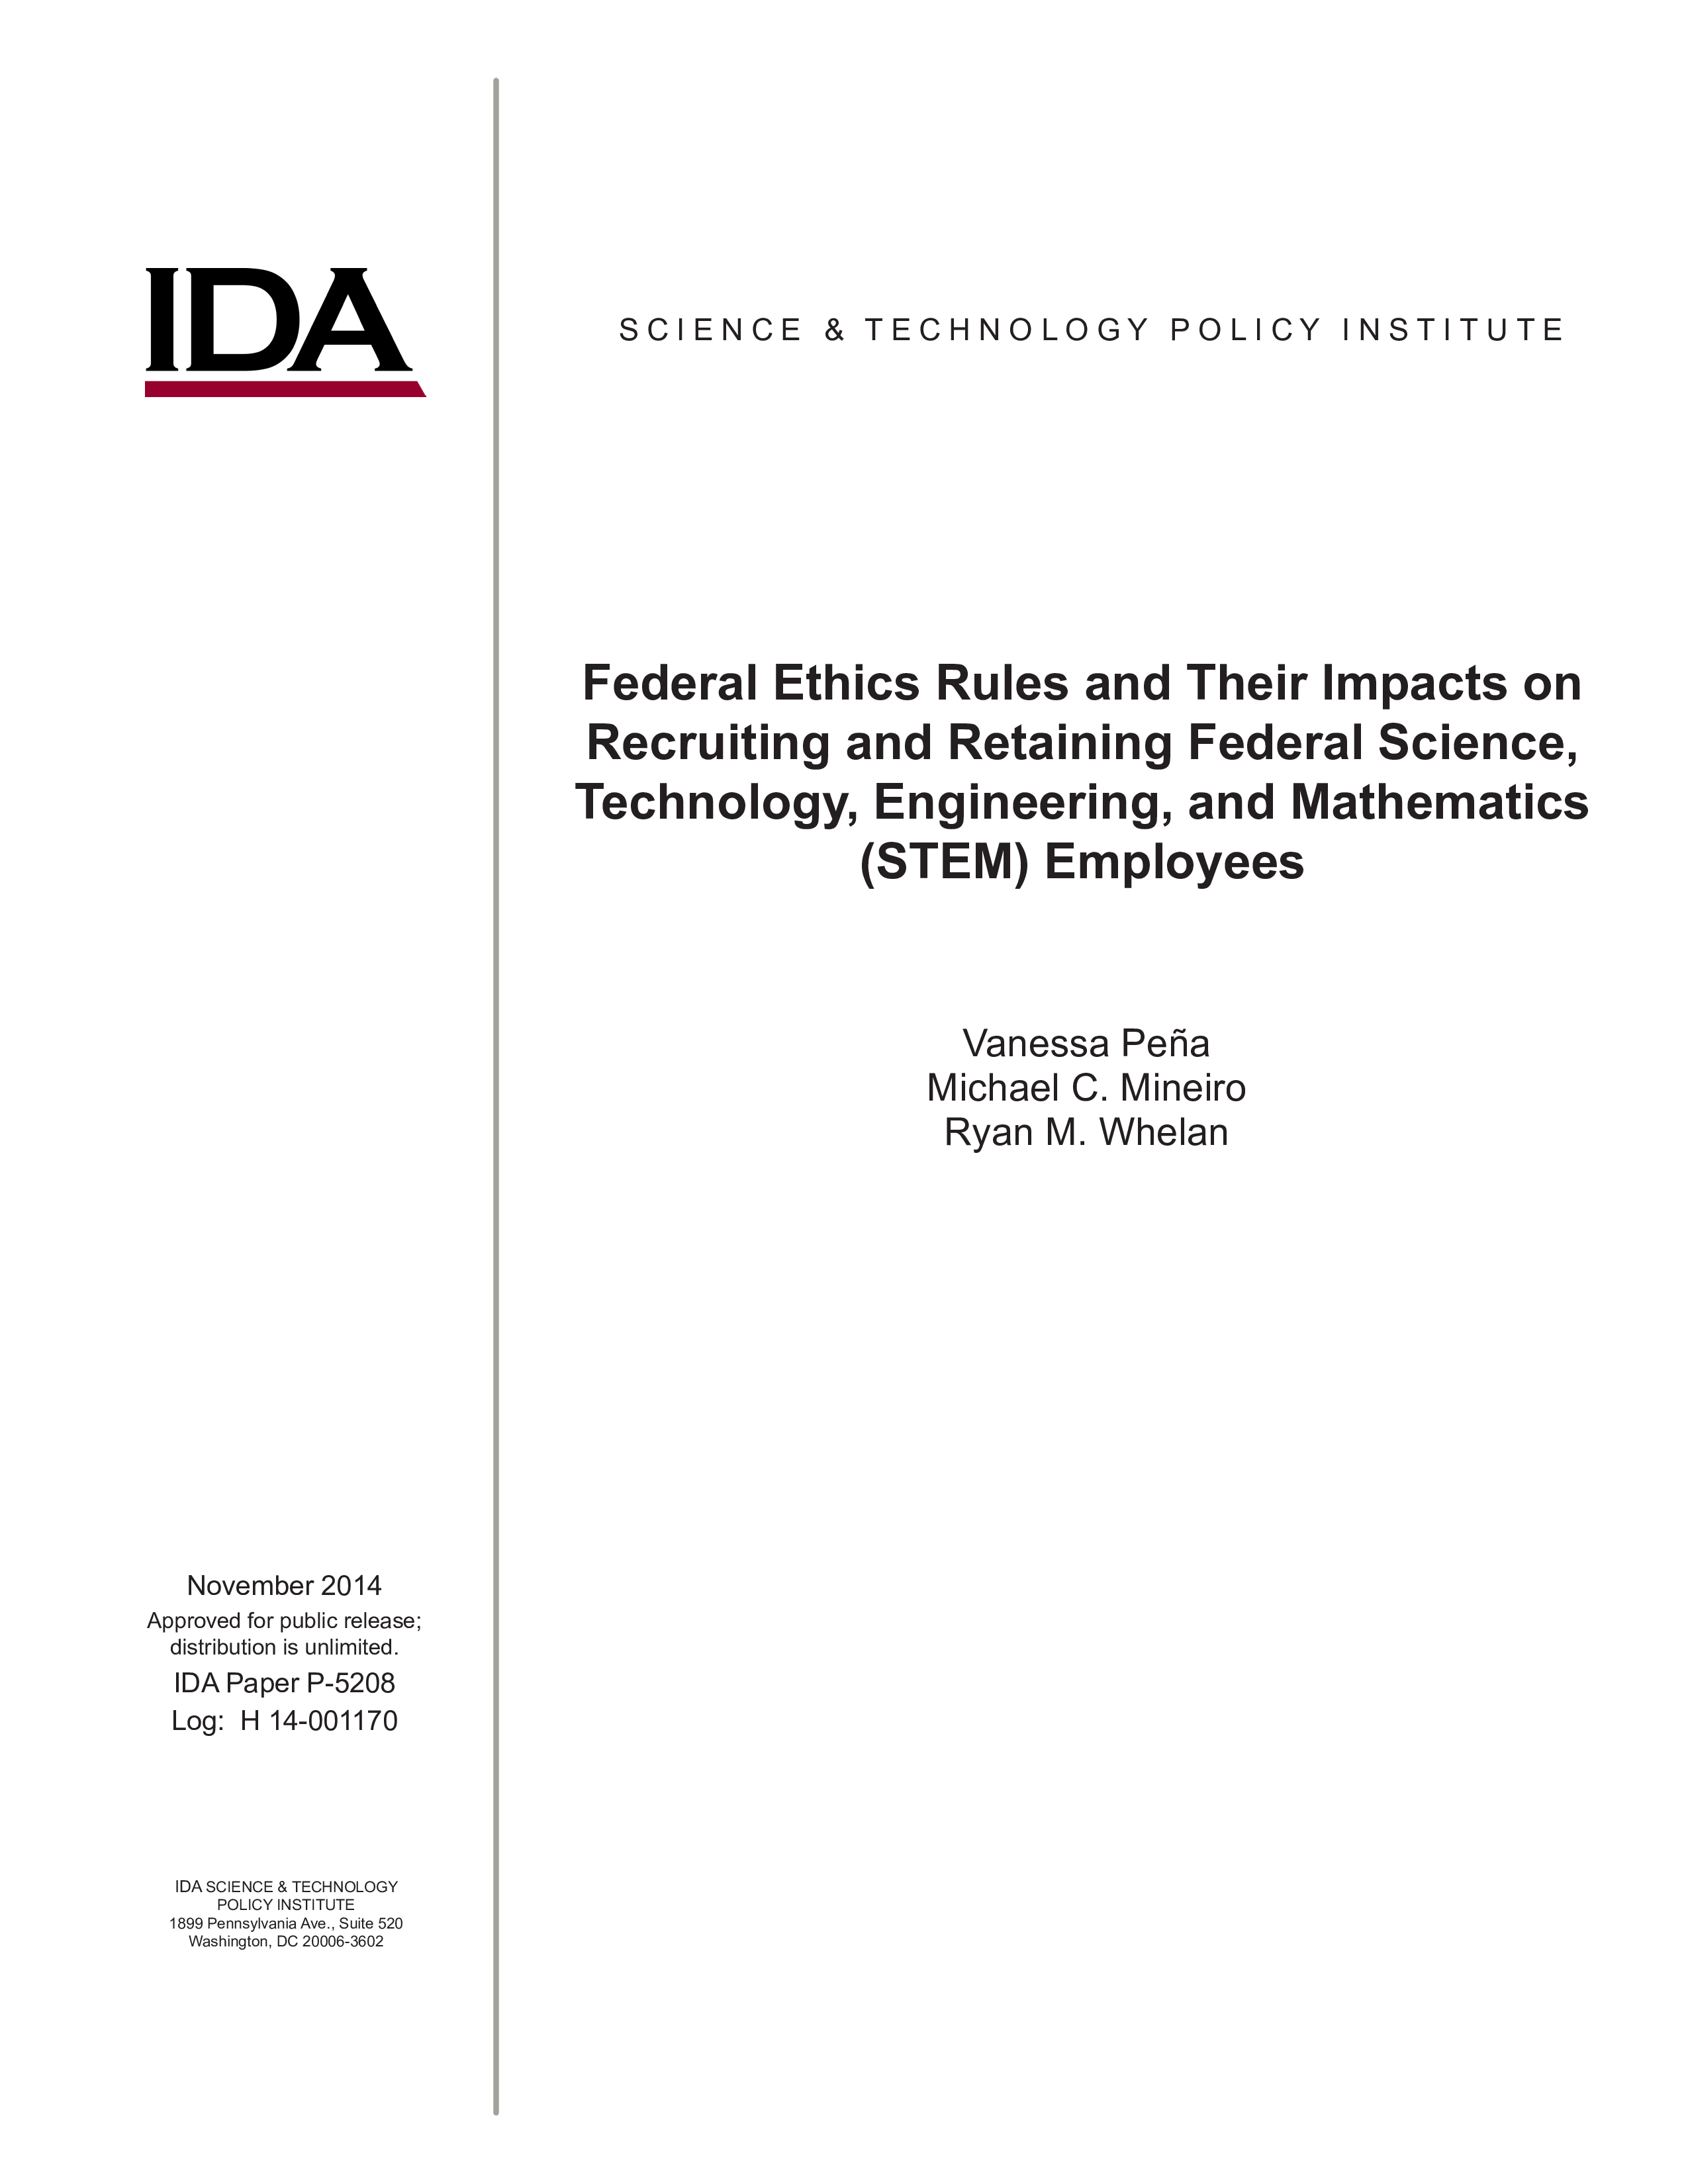 Federal Ethics Rules and Their Impacts on  Recruiting and Retaining Federal Science, Technology, Engineering, and Mathematics (STEM) Employees